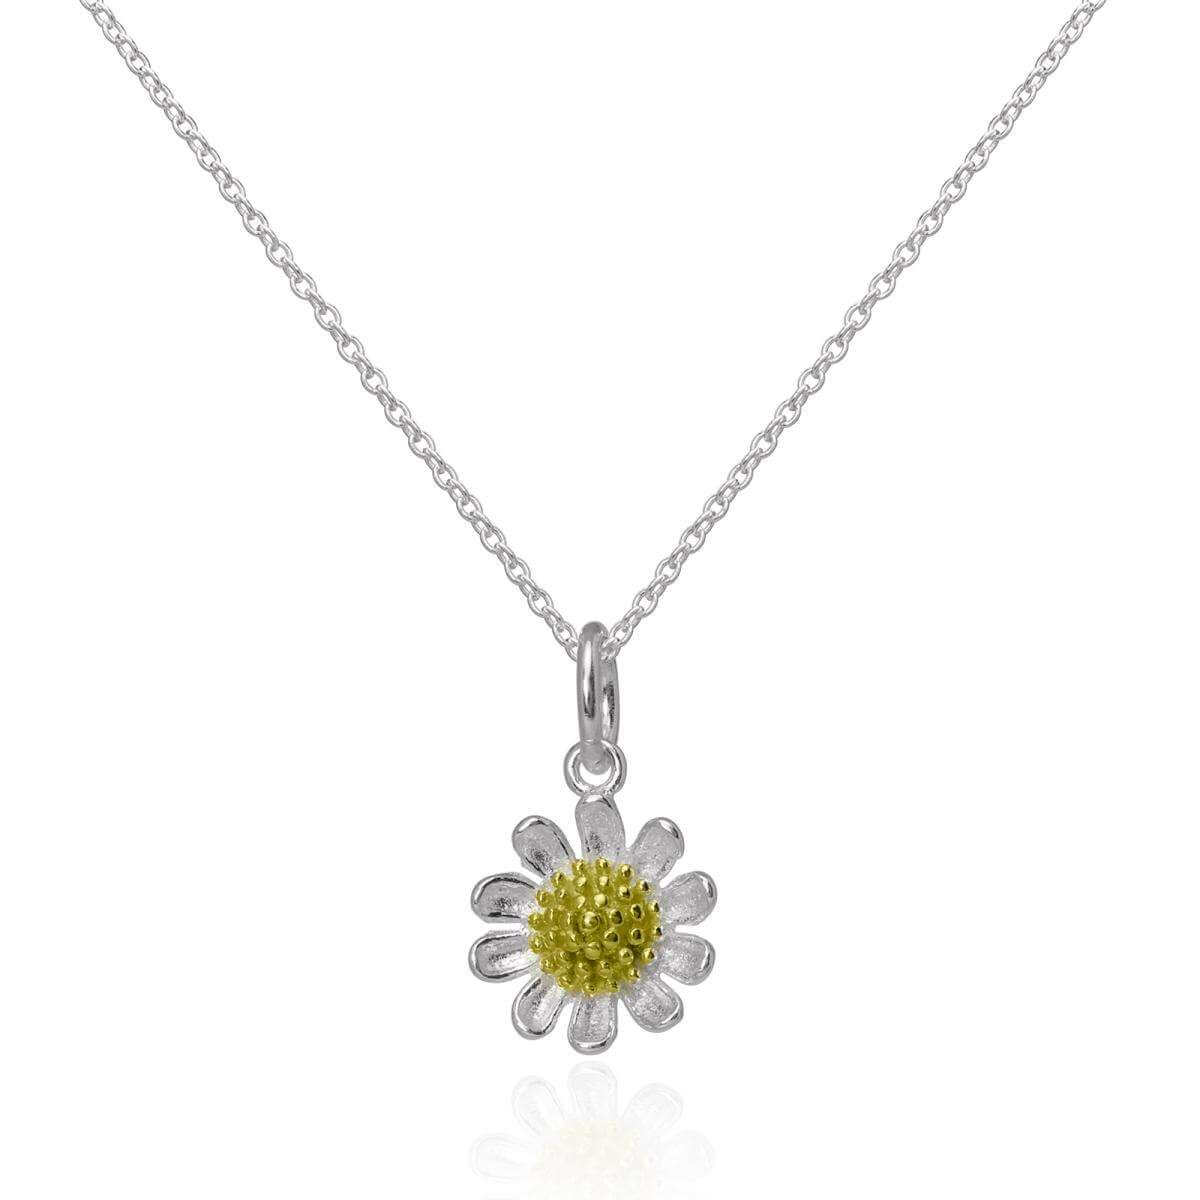 Gold Plated & Sterling Silver Daisy Flower Pendant Necklace 16 - 22 Inches